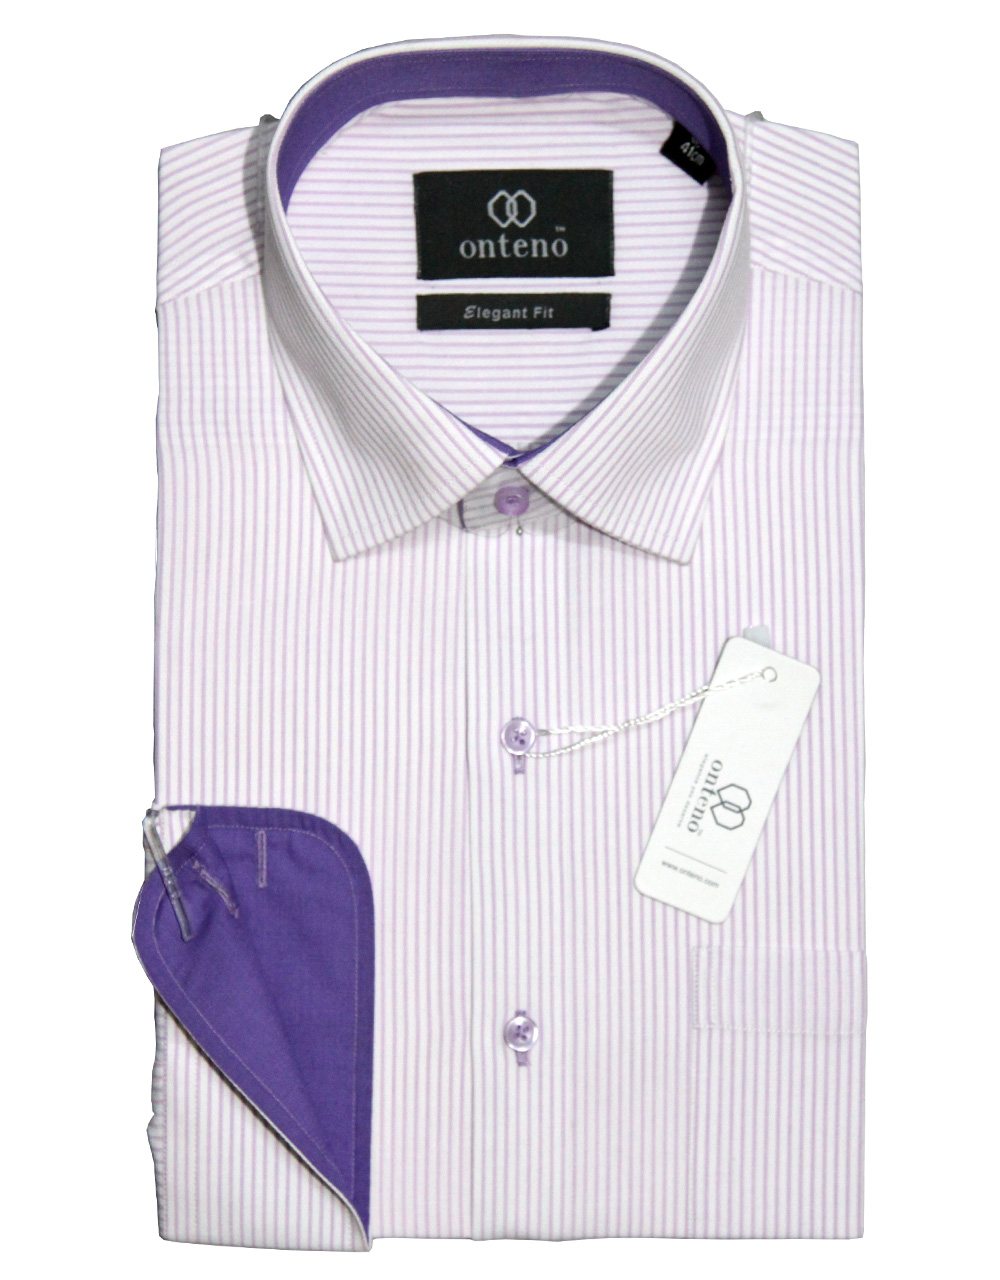 White shirt with purpal striped inner collar cuff for Blue and white striped shirt with white collar